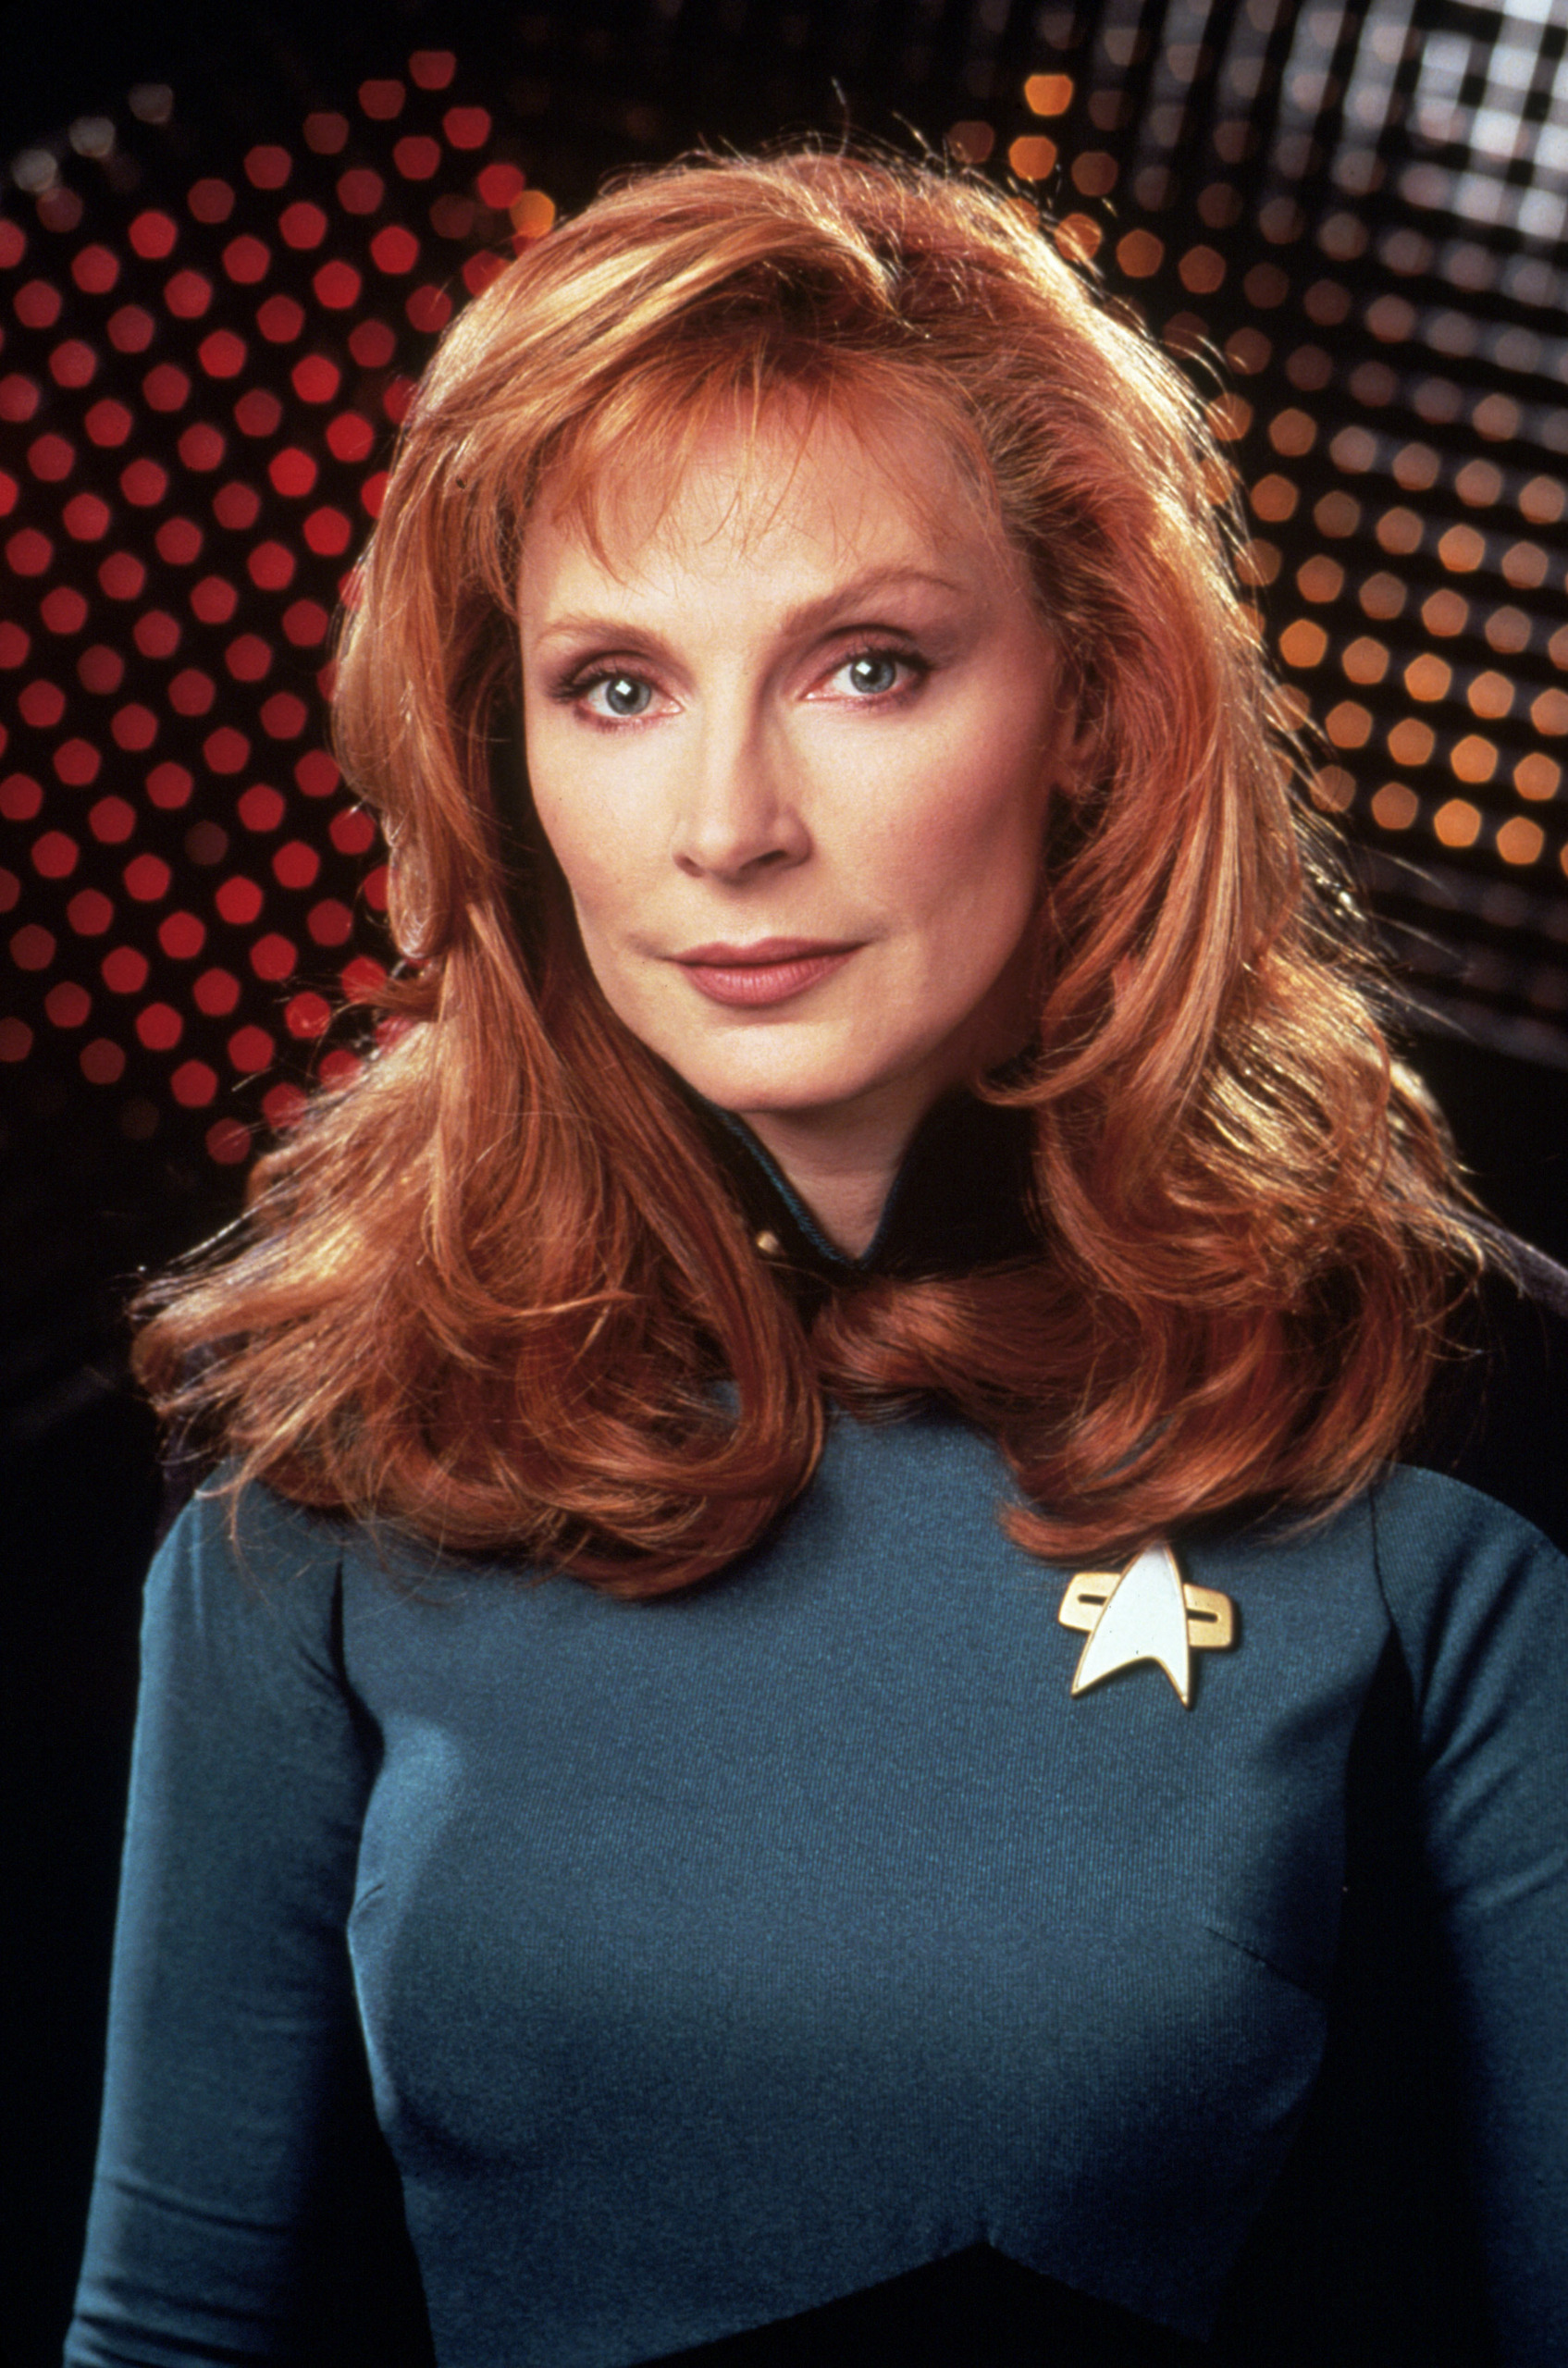 Star Trek Dr Crusher